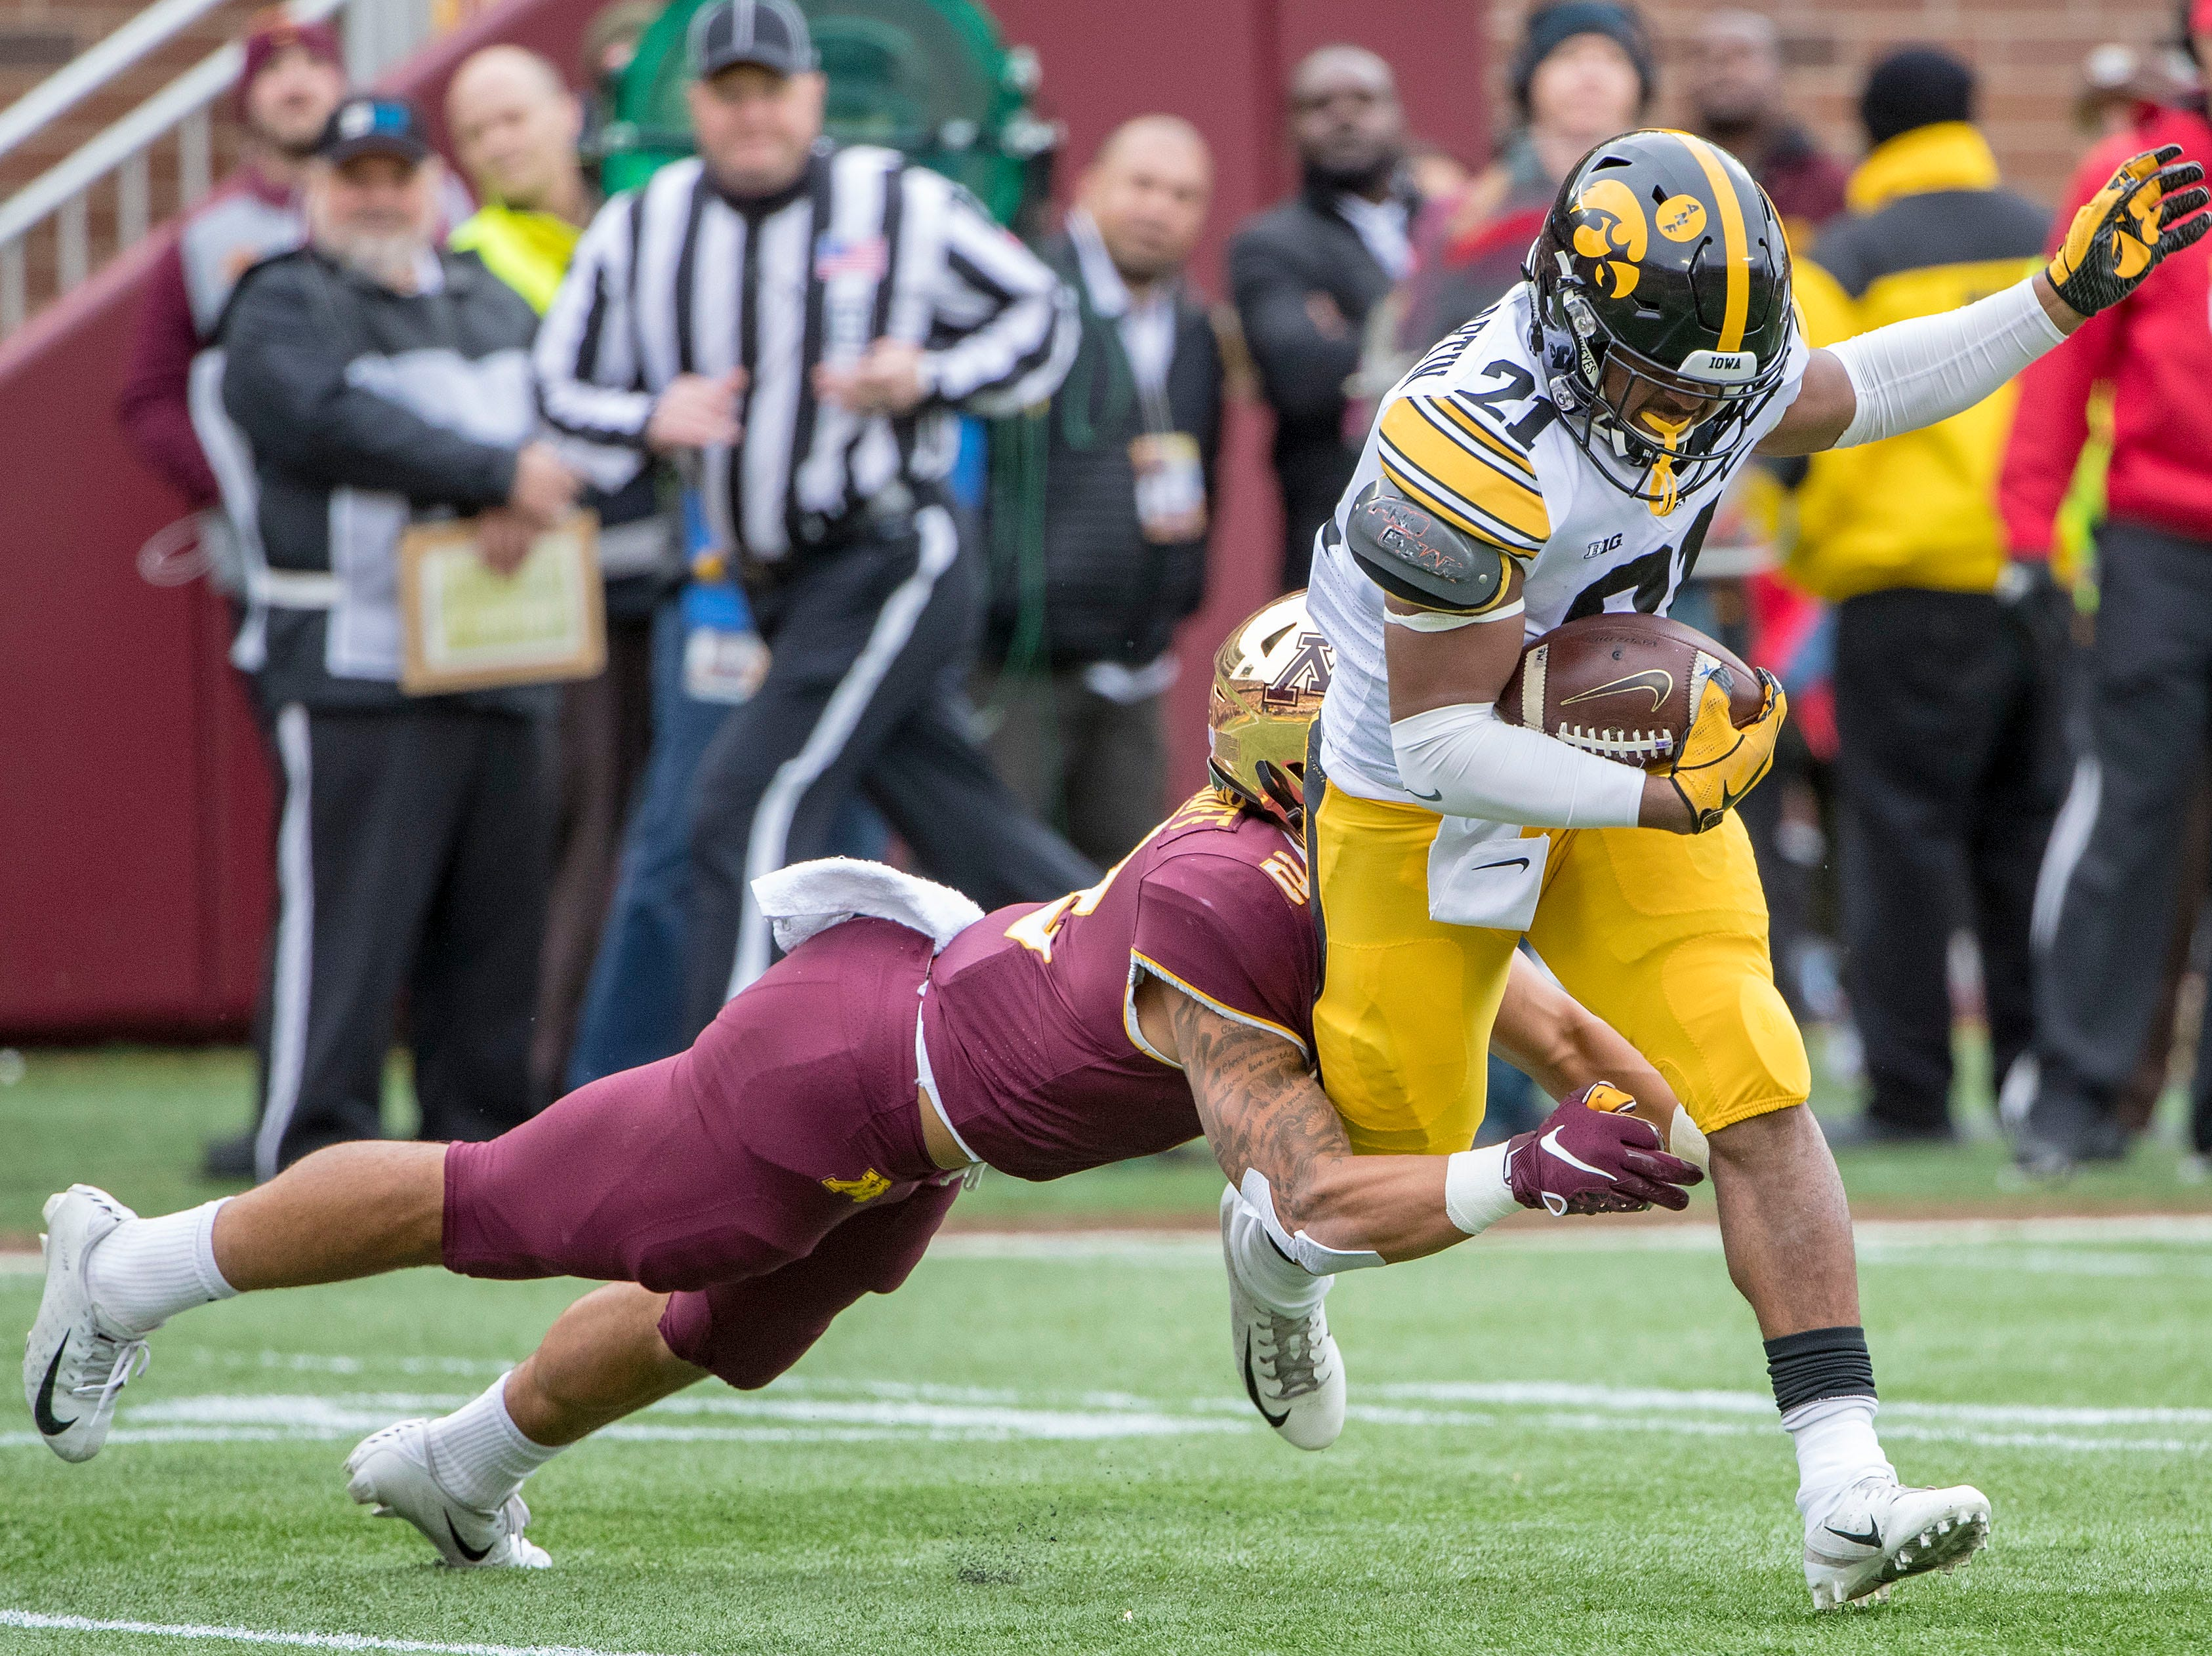 Oct 6, 2018; Minneapolis, MN, USA; Iowa Hawkeyes running back Ivory Kelly-Martin (21) runs the ball as Minnesota Golden Gophers defensive back Jacob Huff (2) makes a tackle in the first quarter at TCF Bank Stadium. Mandatory Credit: Jesse Johnson-USA TODAY Sports